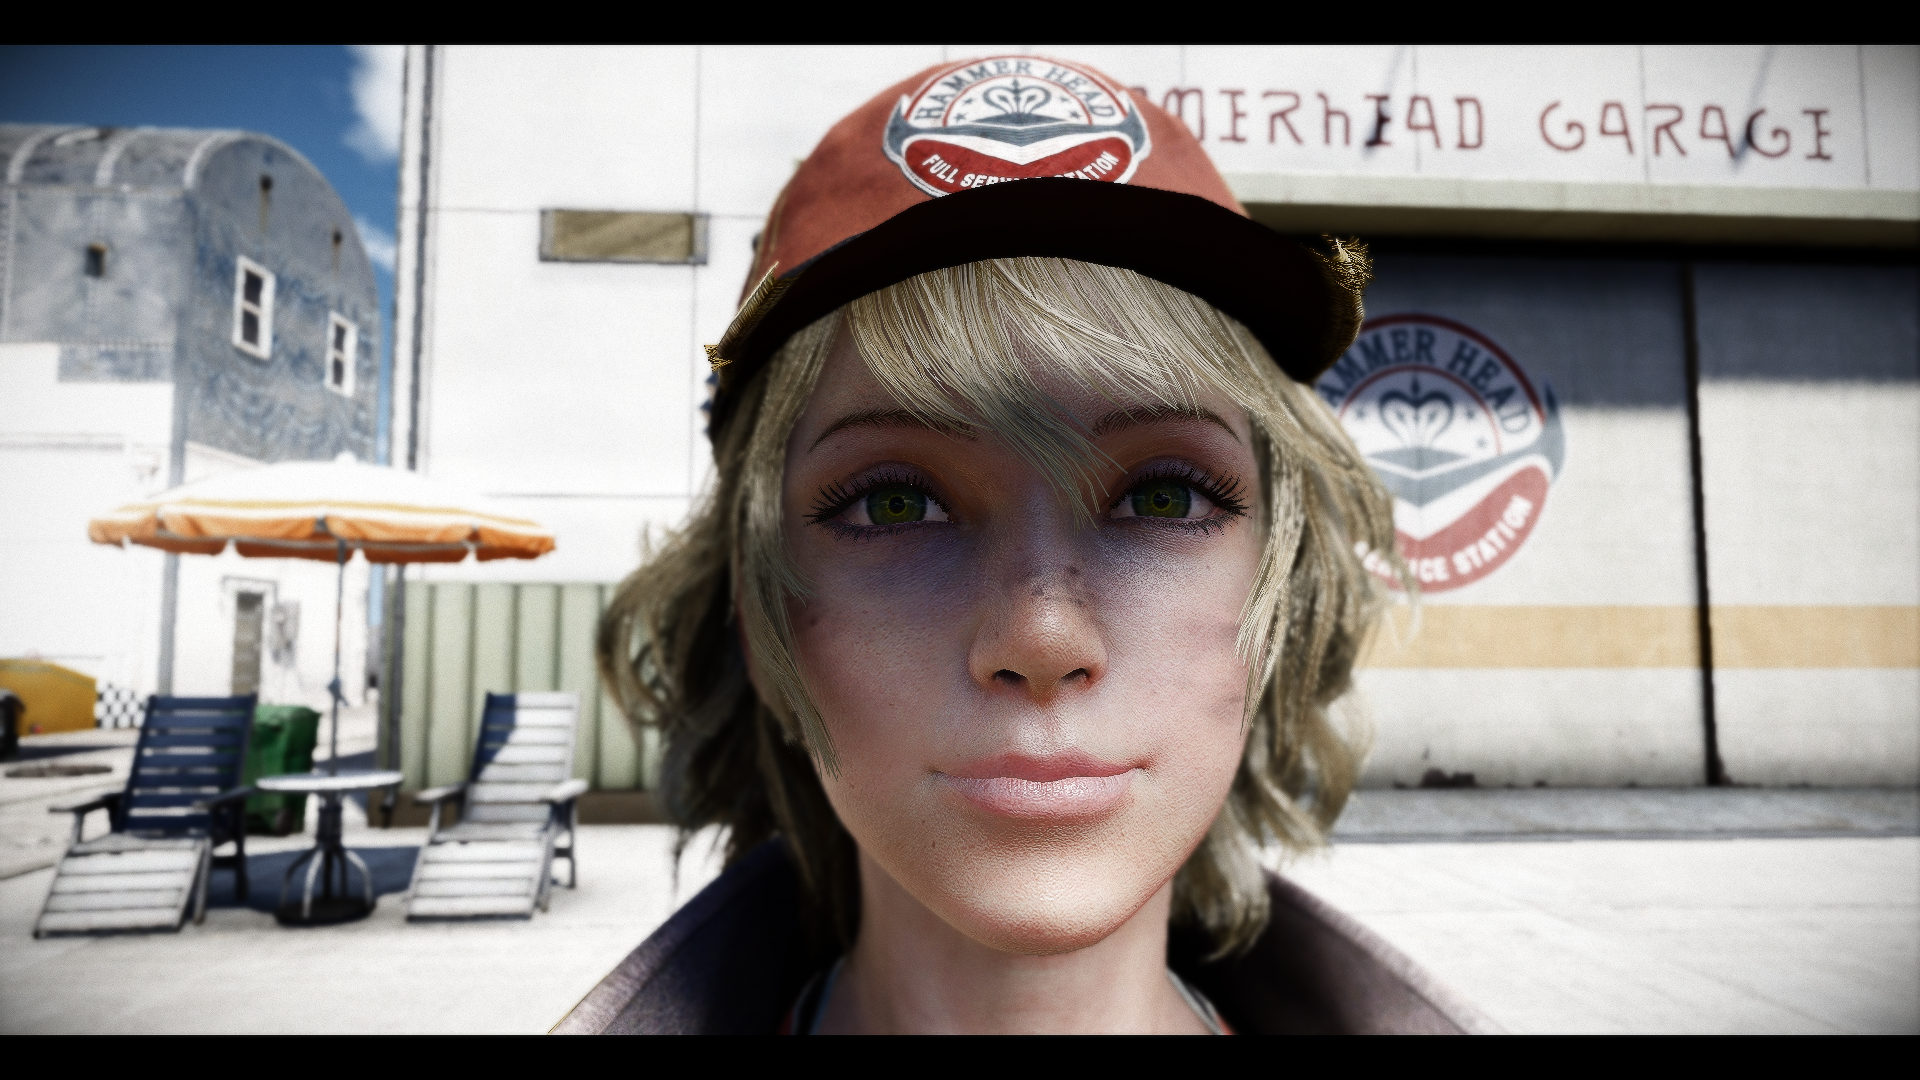 Working on Update 1-6 for my ReShade